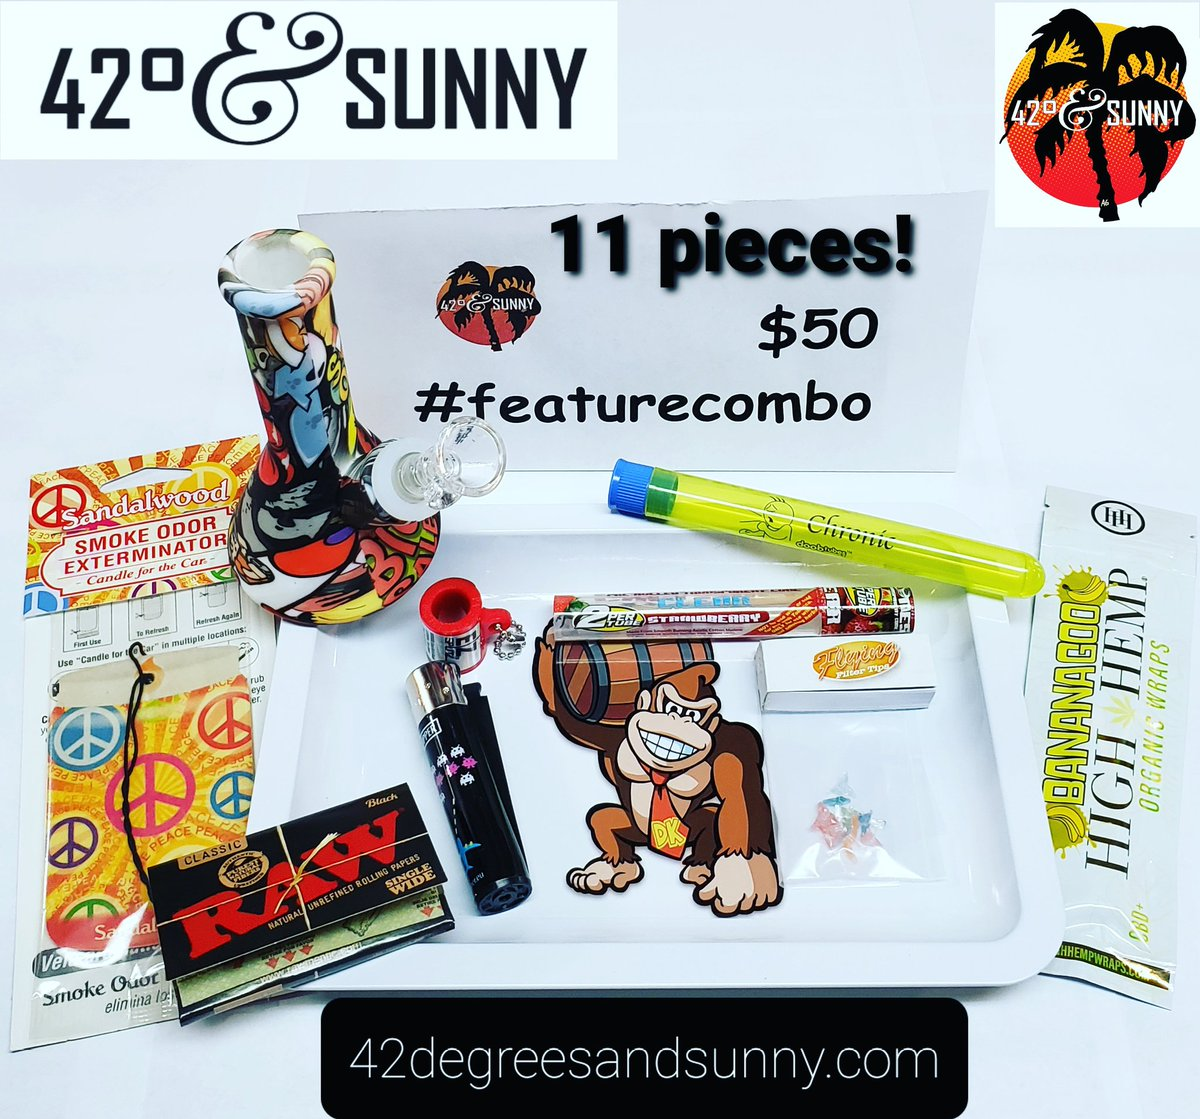 #humpday #featurecombo 📣11 pieces for $50!📣 #waterpipe #glassscreens #rollingtray #ezsplitz #doobtube #clearcones #highhempwraps #clipperlighter #rawrollingpapers #filtertips #smokeodorexterminator #smokingdeals on #smokingaccessories #420andsunny #42degreesandsunny https://t.co/osIPVZaFNc